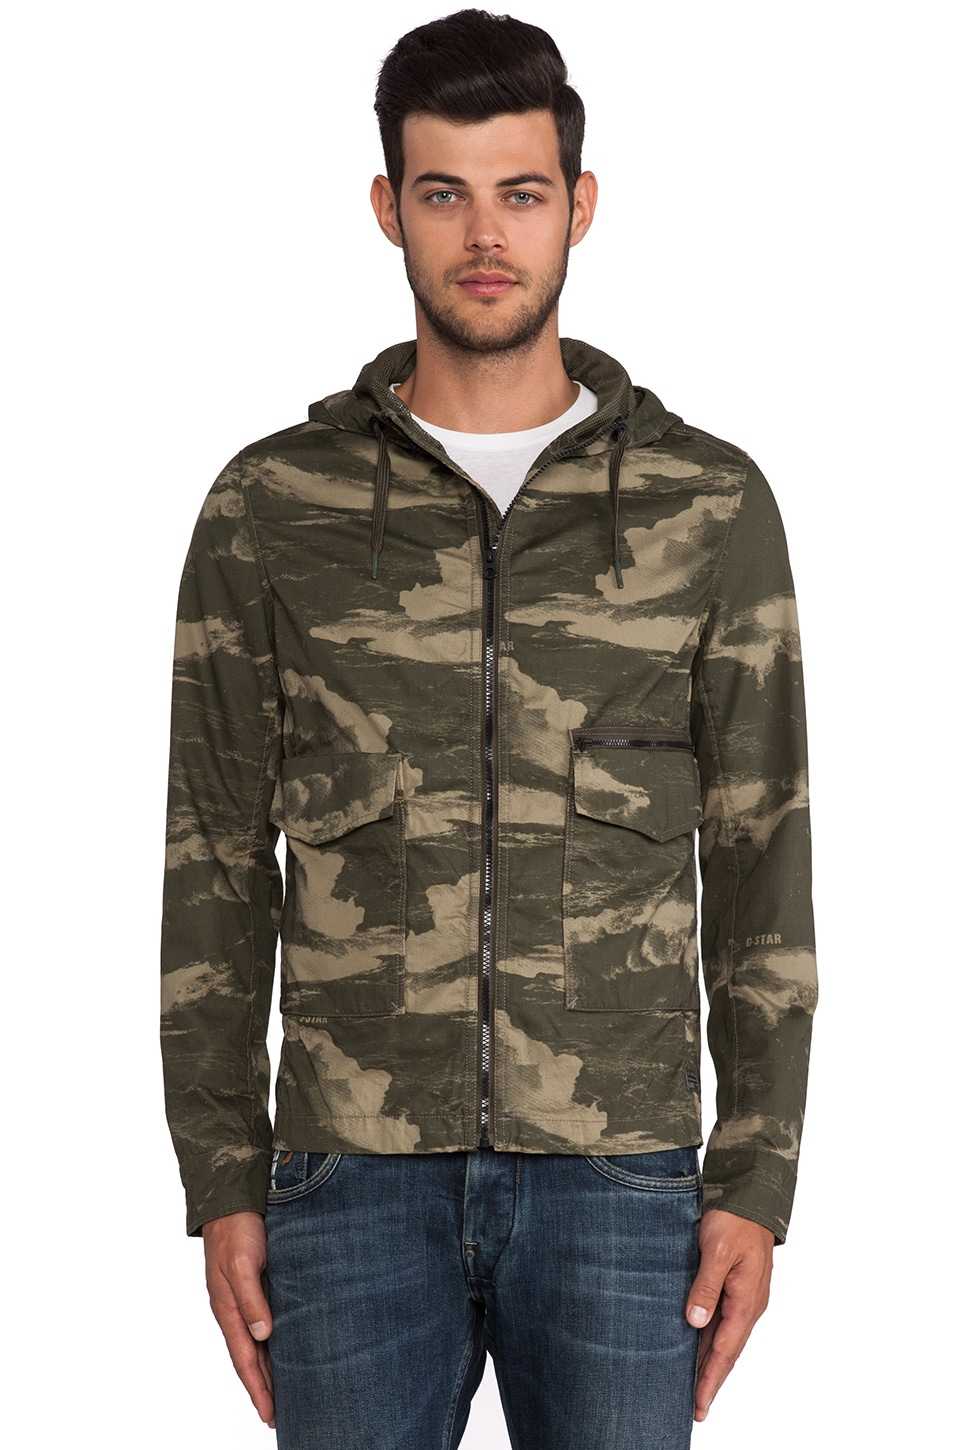 G-Star Troupman Hooded Overshirt in Combat